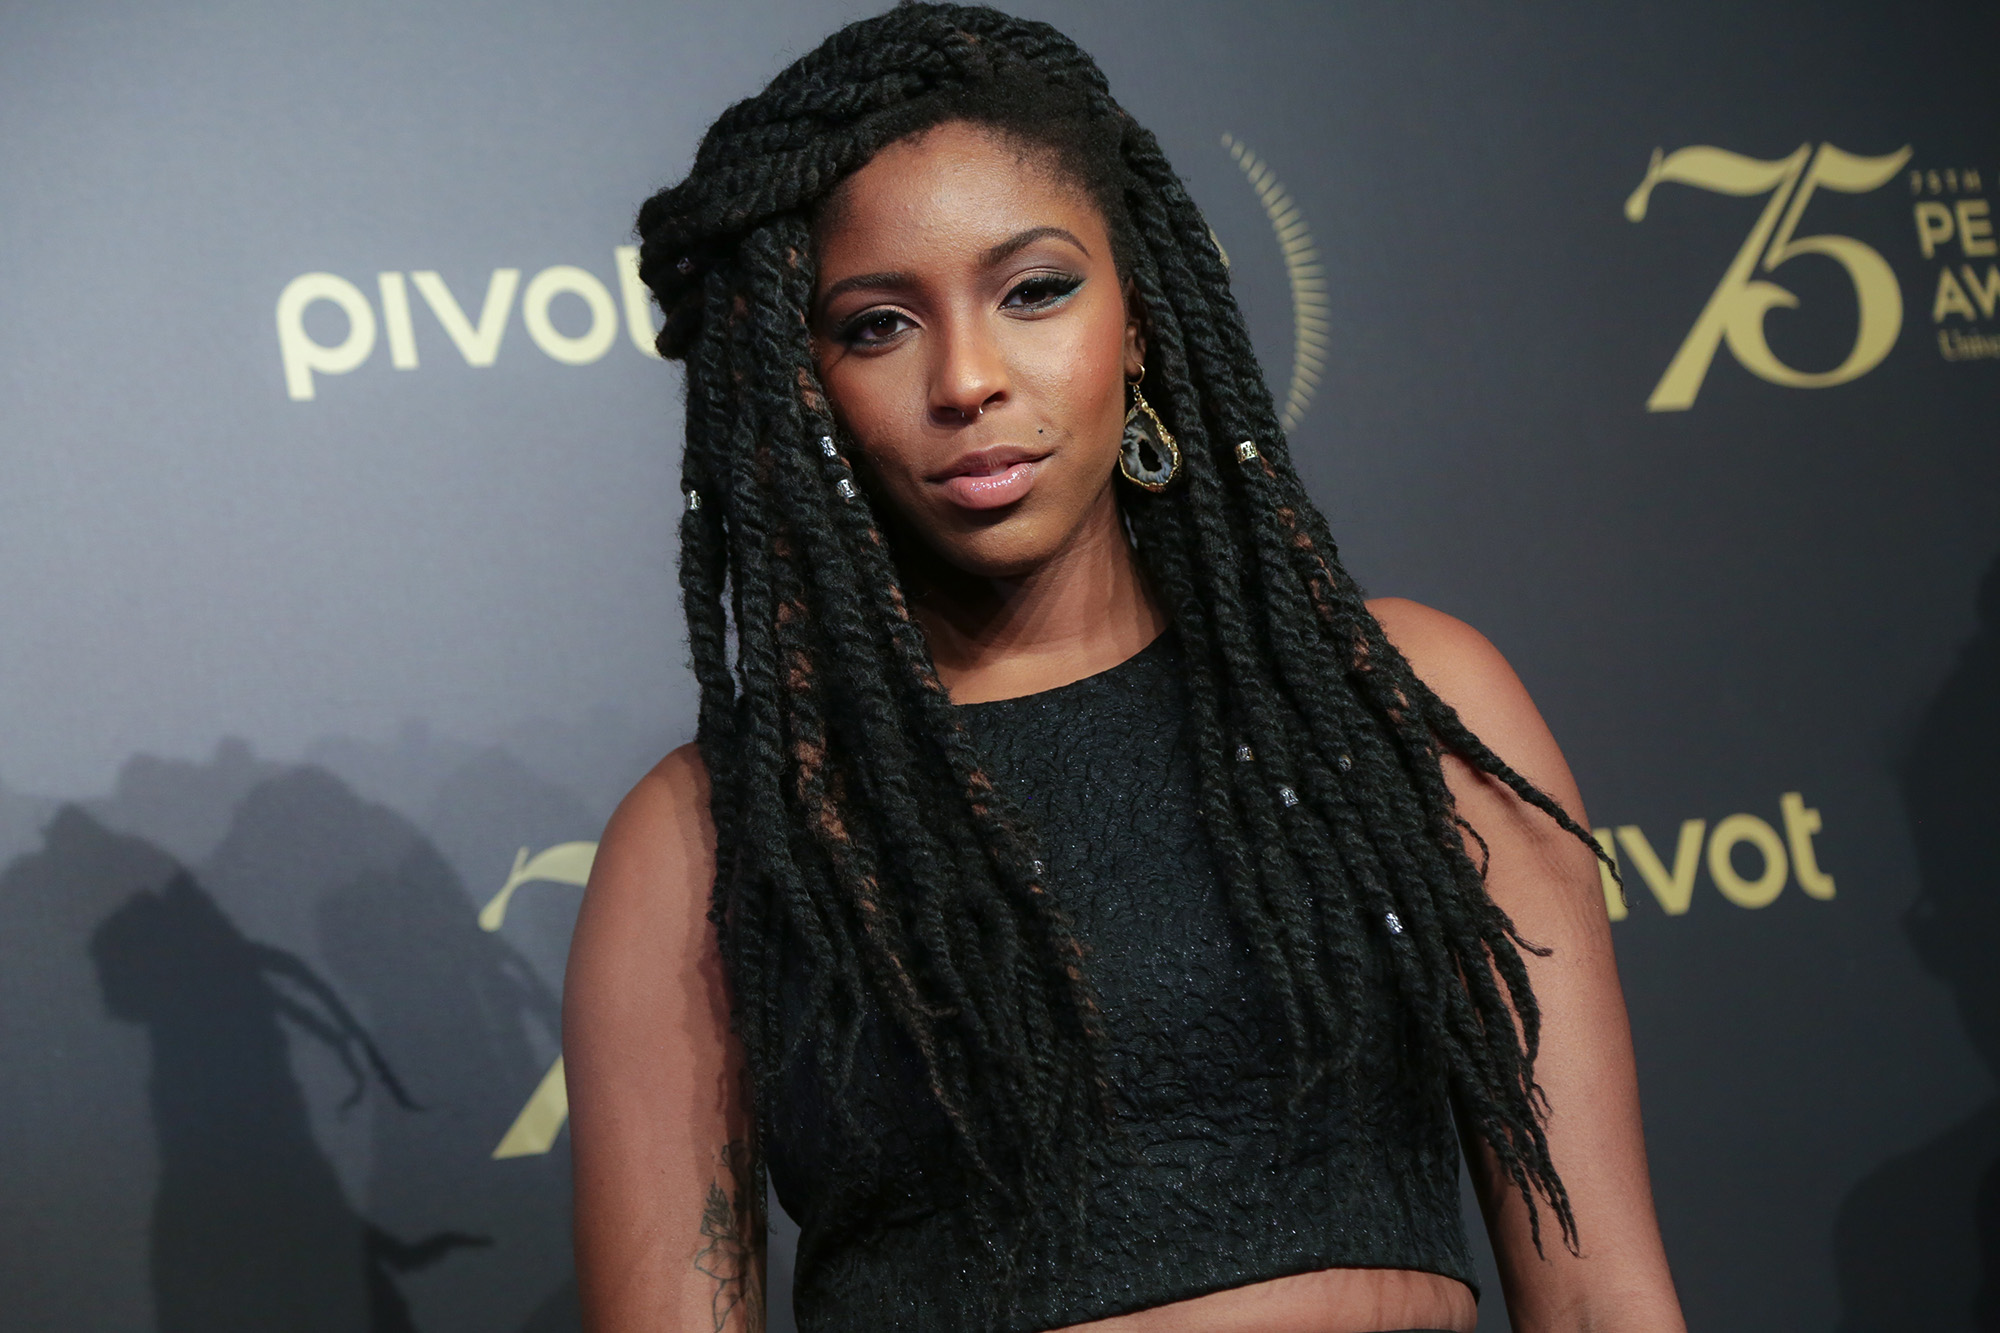 Correspondent from  The Daily Show  Jessica Williams attends the 75th Annual Peabody Awards Ceremony held at Cipriani Wall Street on May 21, 2016 in New York City.  (Photo by Brent N. Clarke/FilmMagic)